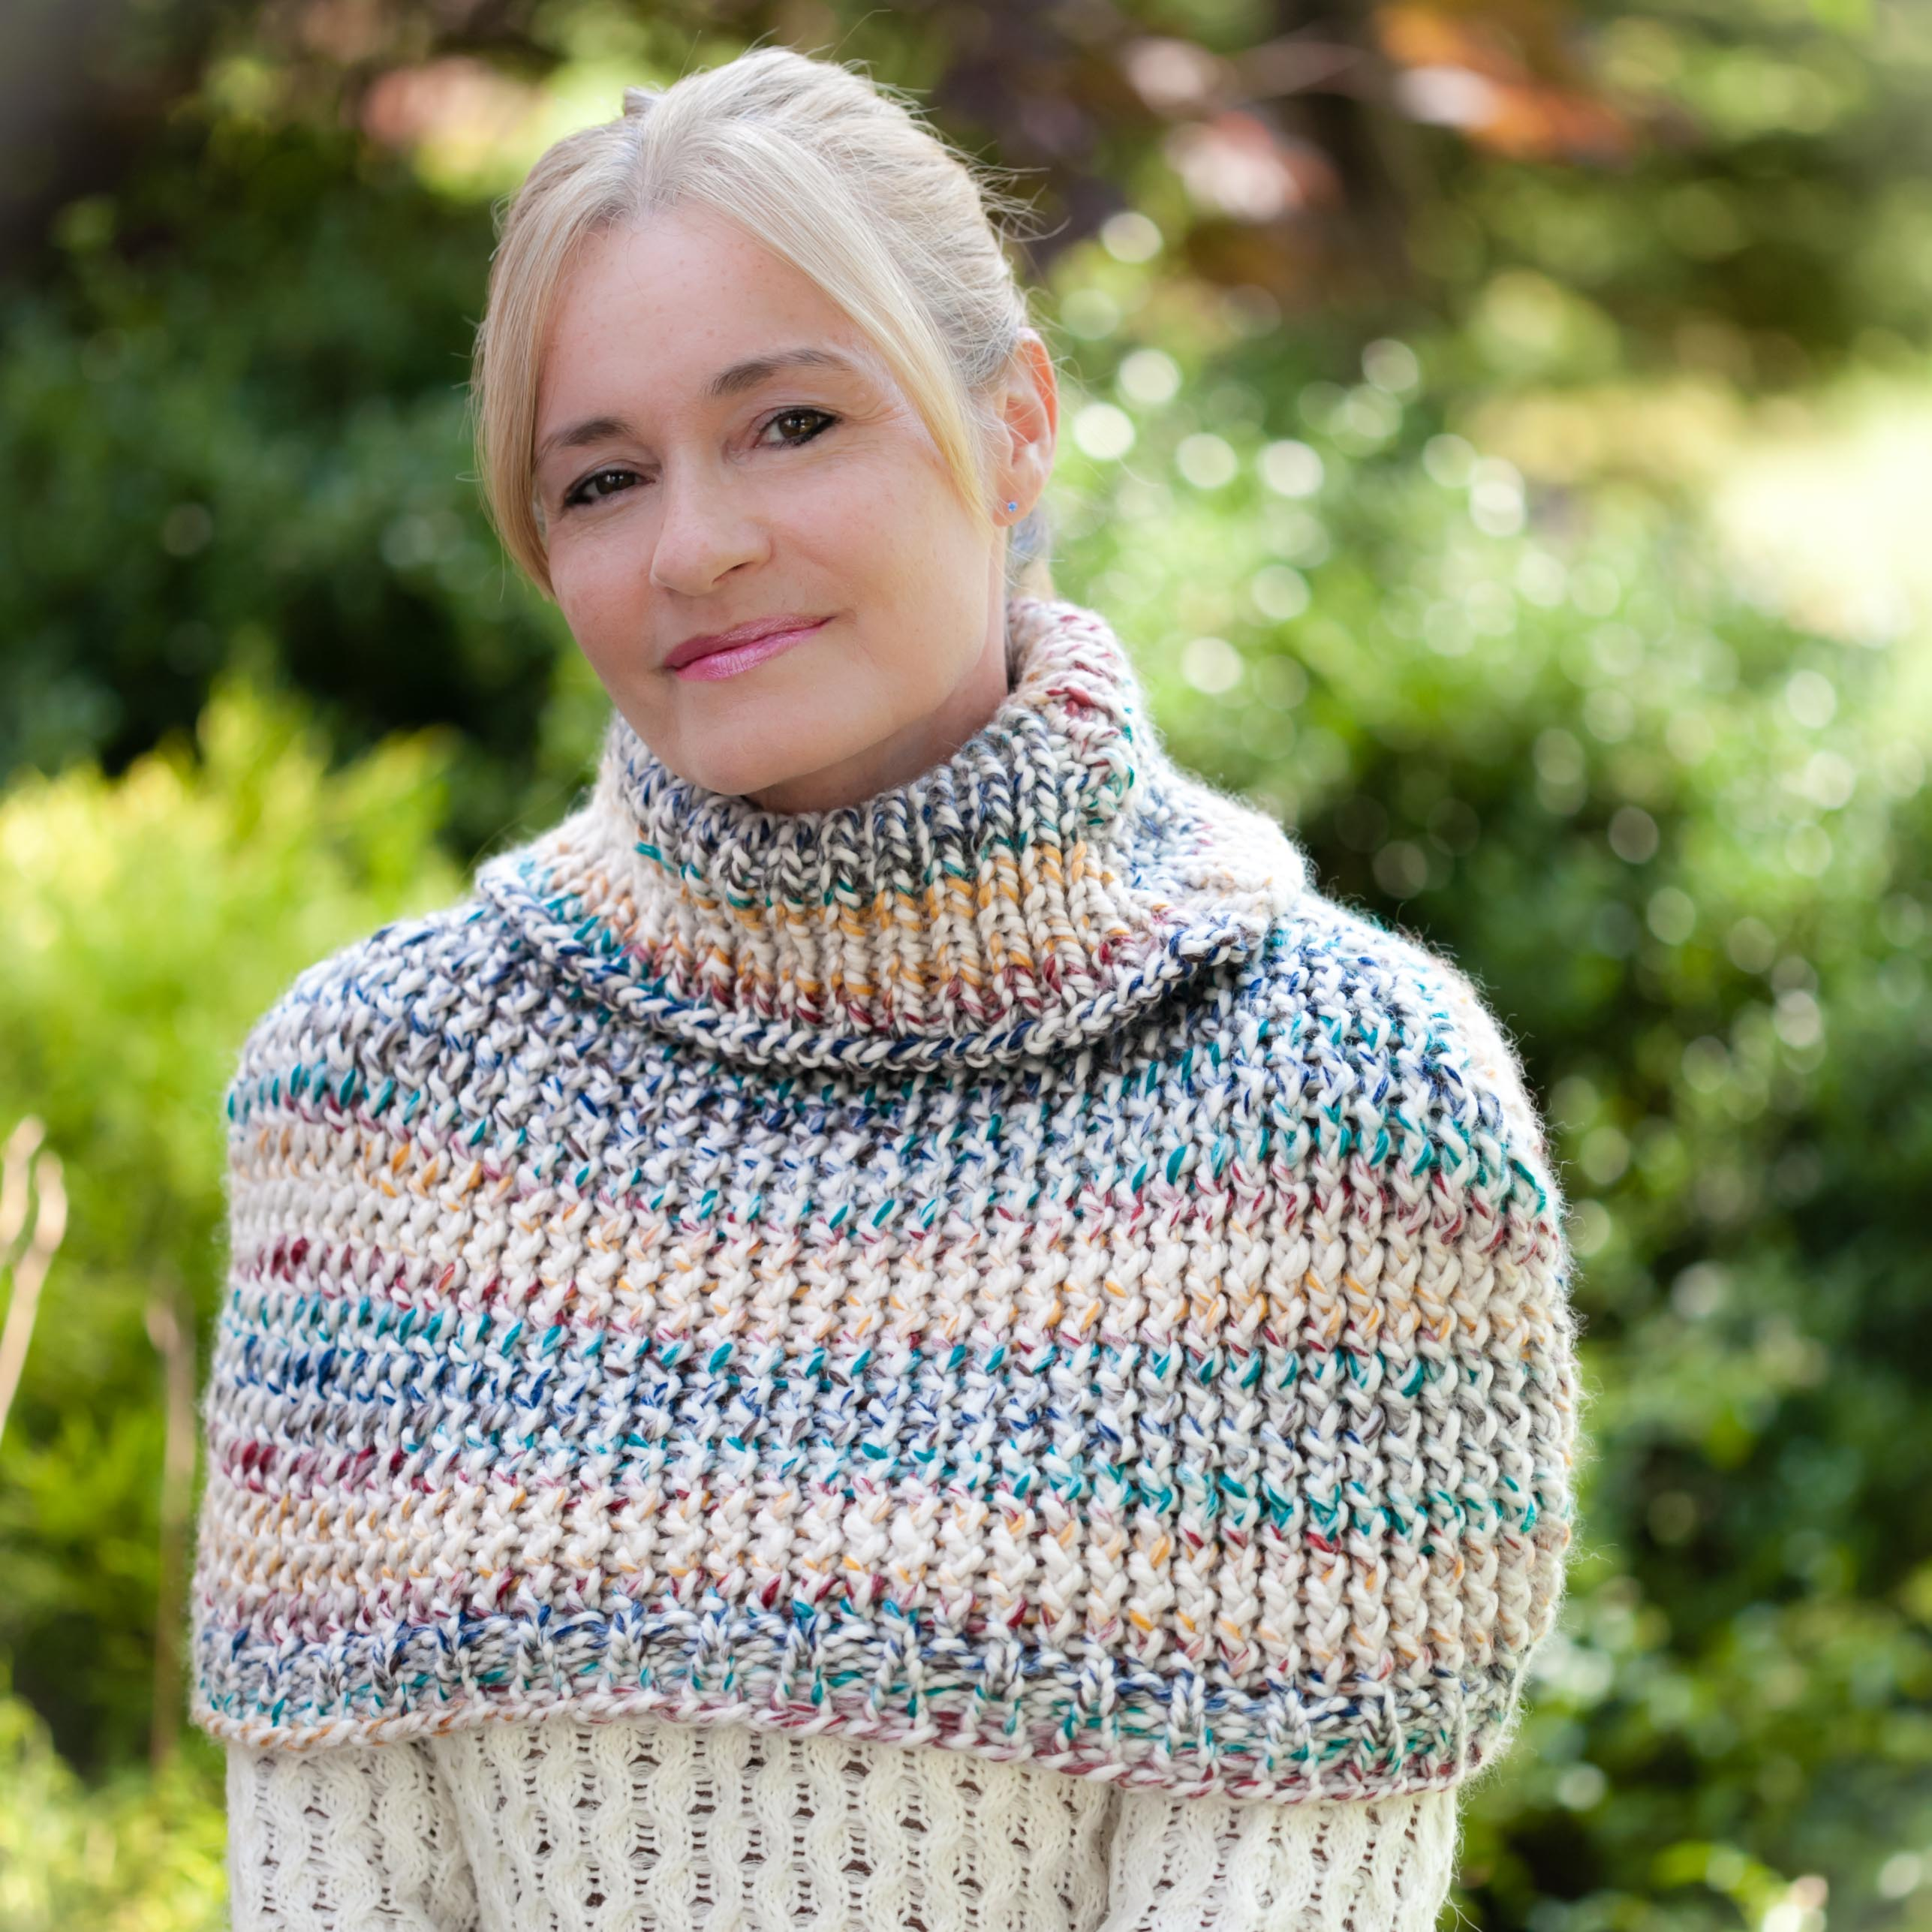 Loom Knitting Poncho : Loom knit cape capelet poncho pattern this moment is good